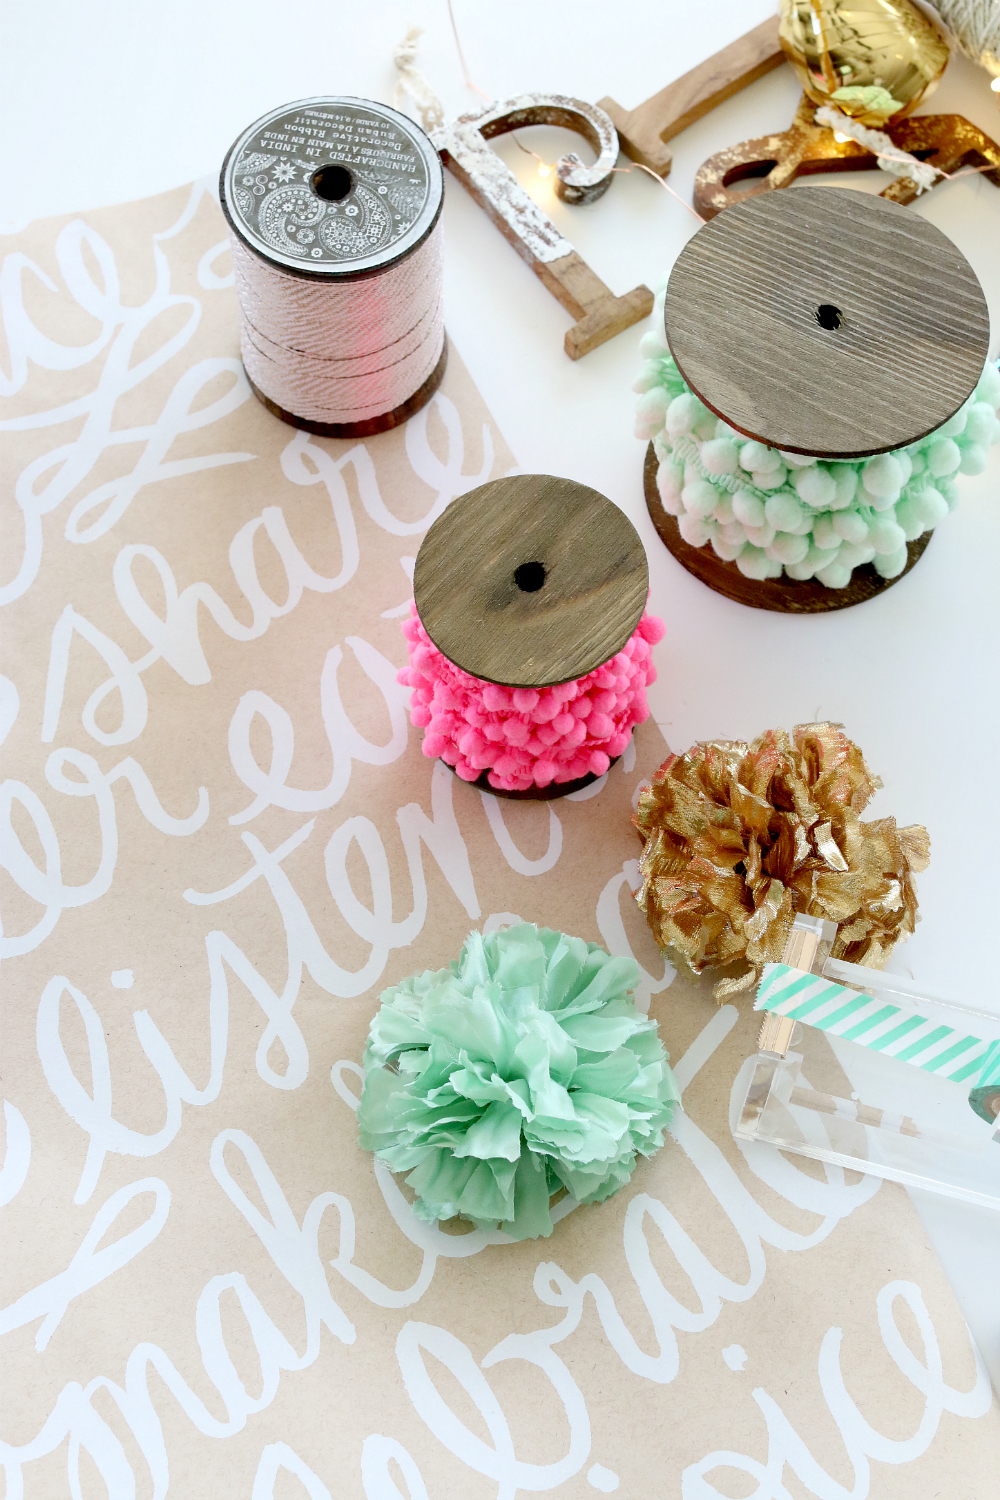 Gift wrapping paper pom pom